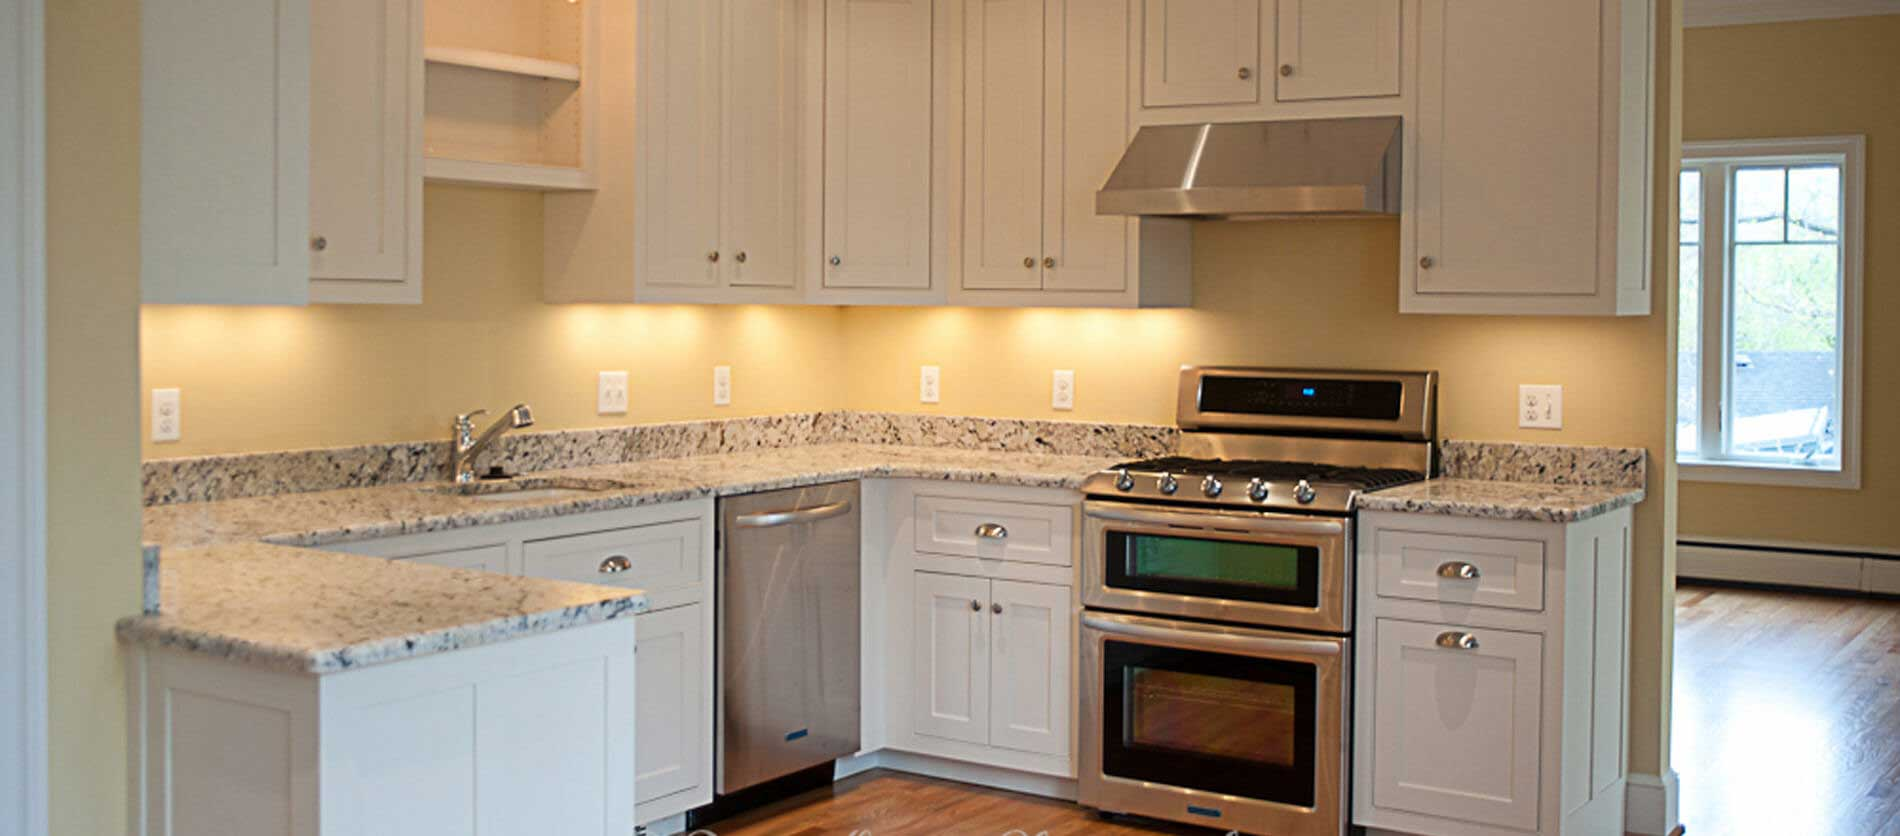 Dunn-Right Contracting - Open kitchen design